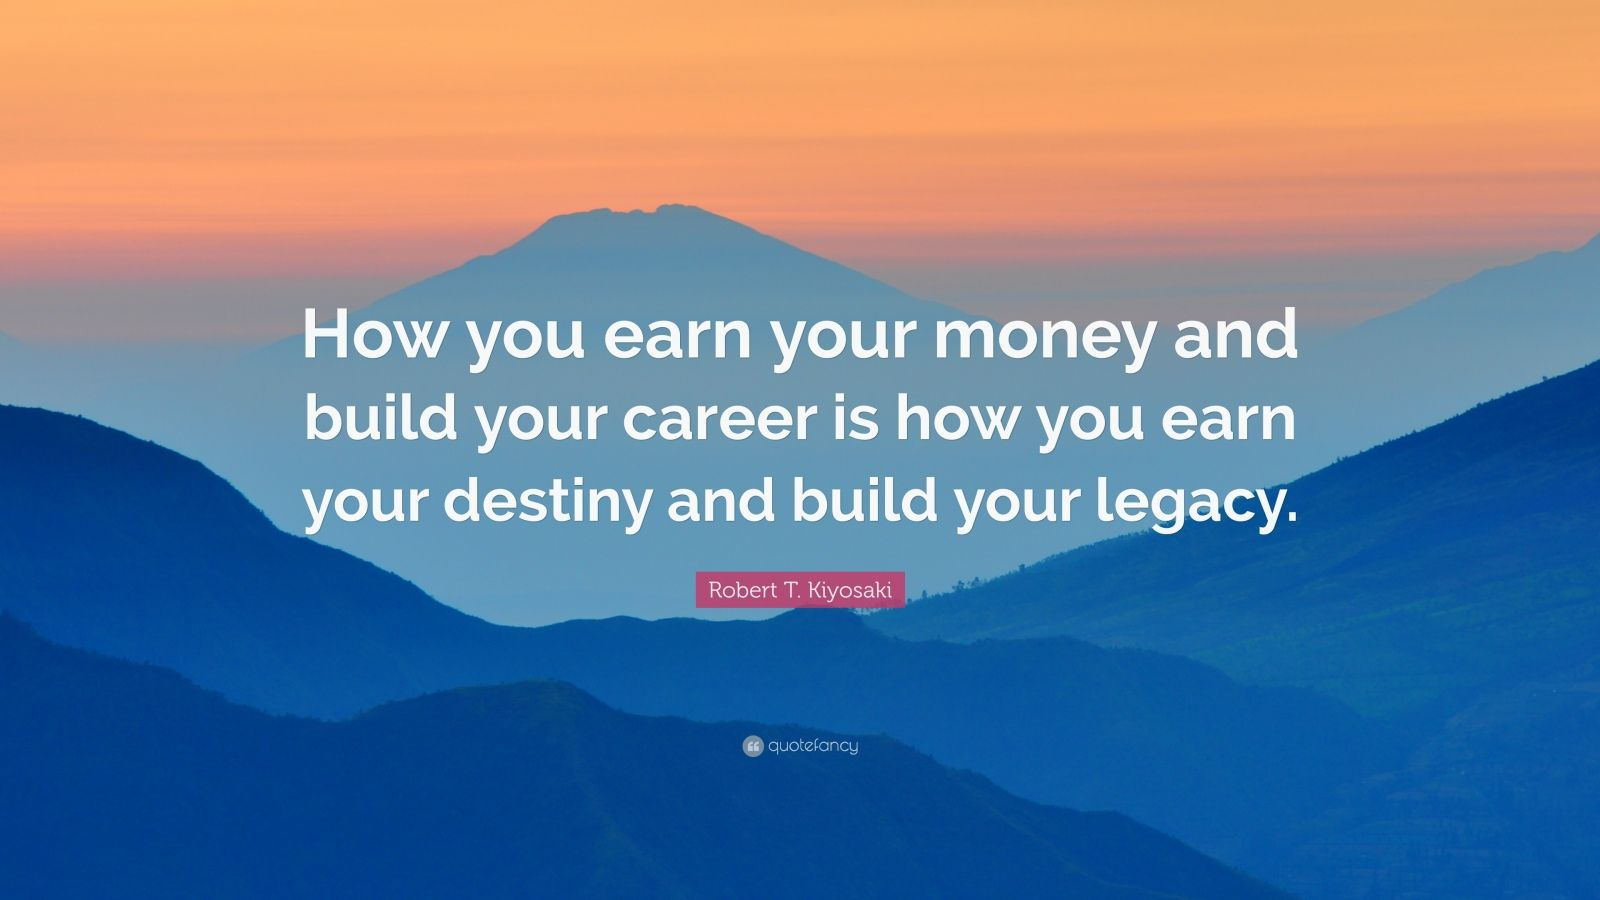 """Robert T. Kiyosaki Quote: """"How you earn your money and build your career is how you earn your destiny and build your legacy."""""""